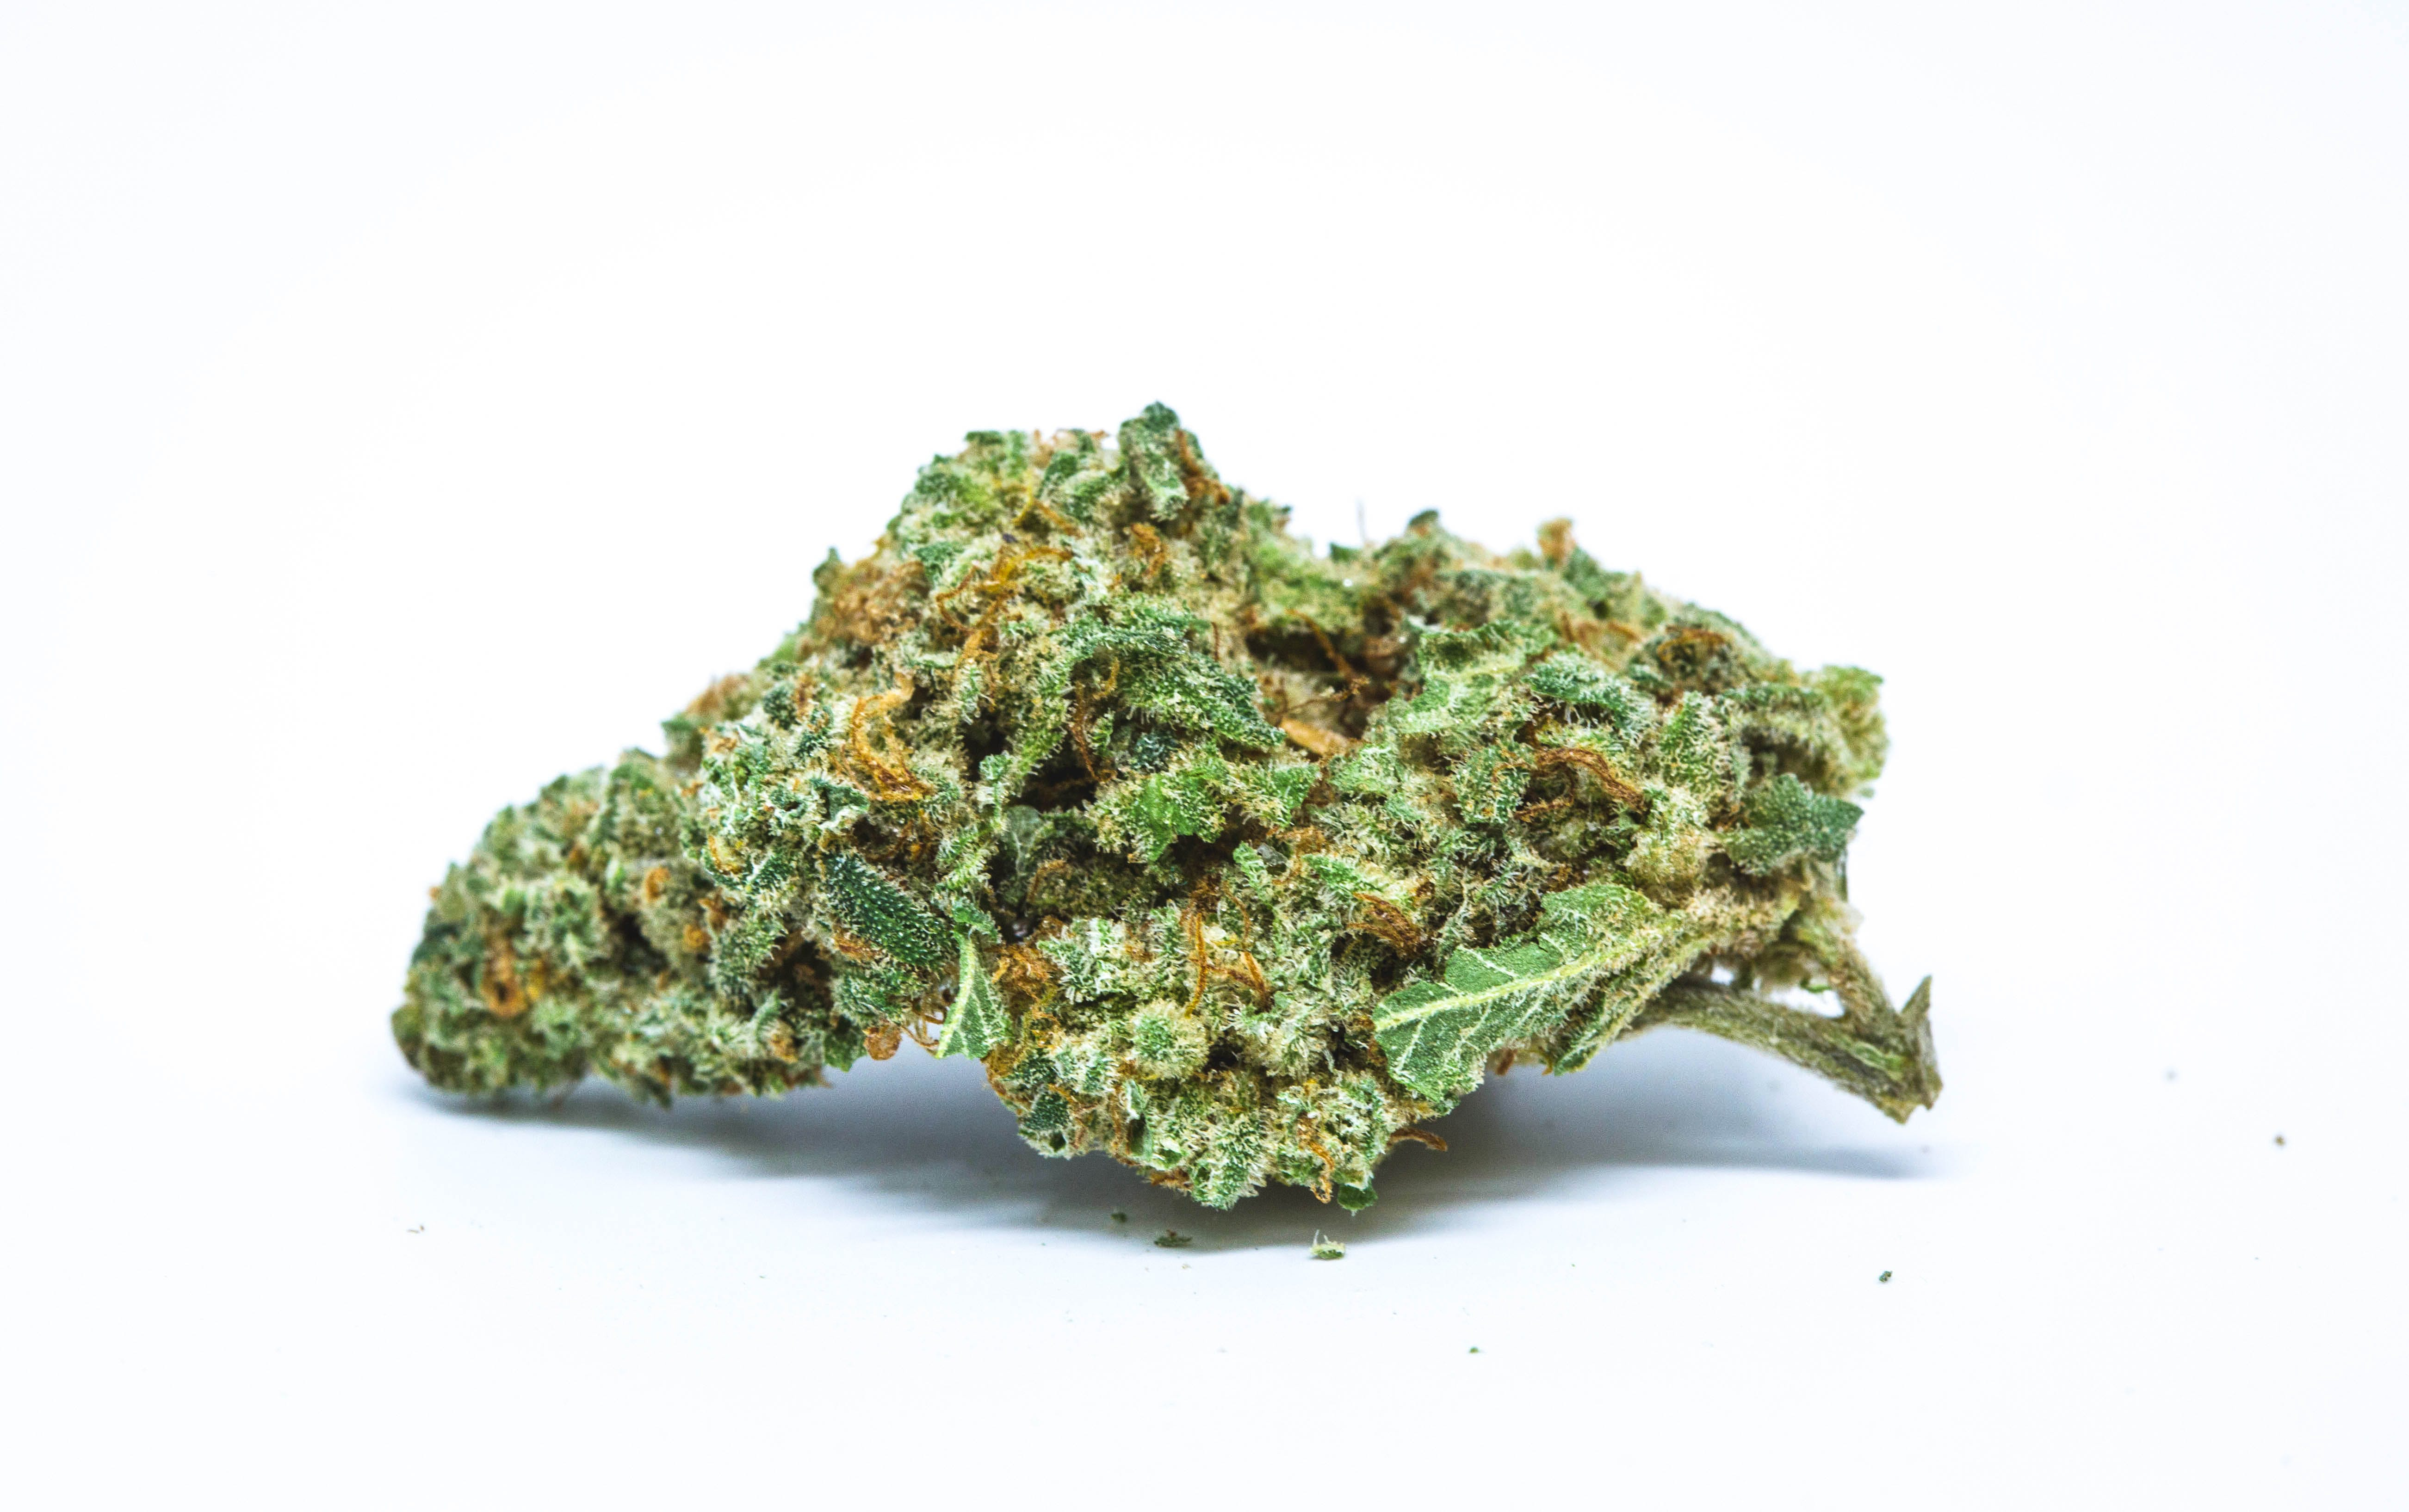 Headband Marijuana Strain How to Get the Most Out Of Your Stash with the Best Weed Grinders